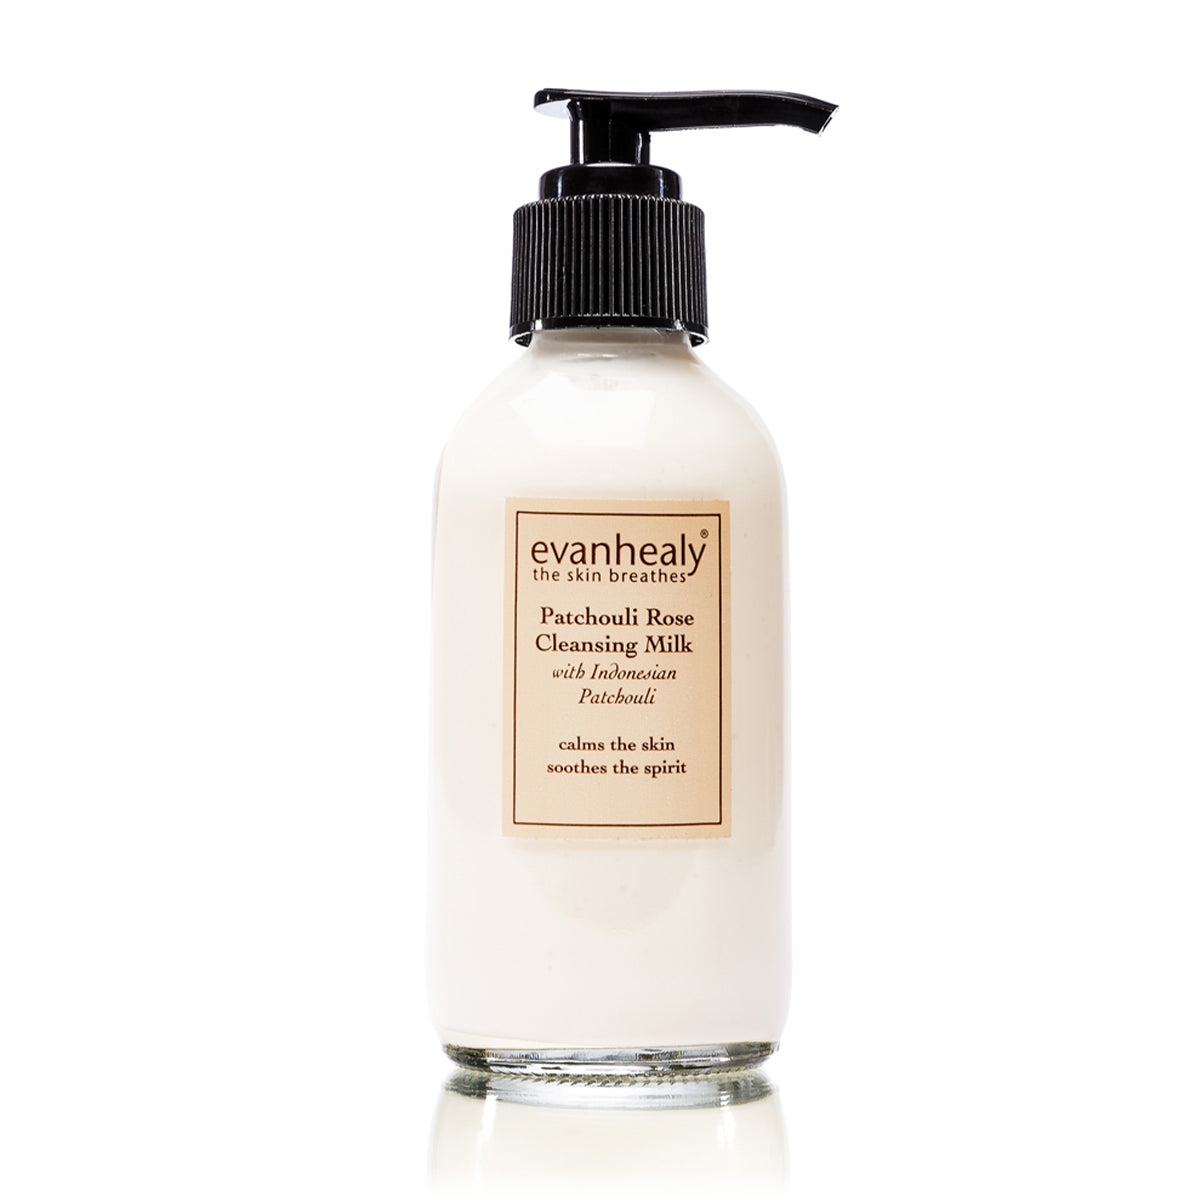 Patchouli Rose Cleansing Milk